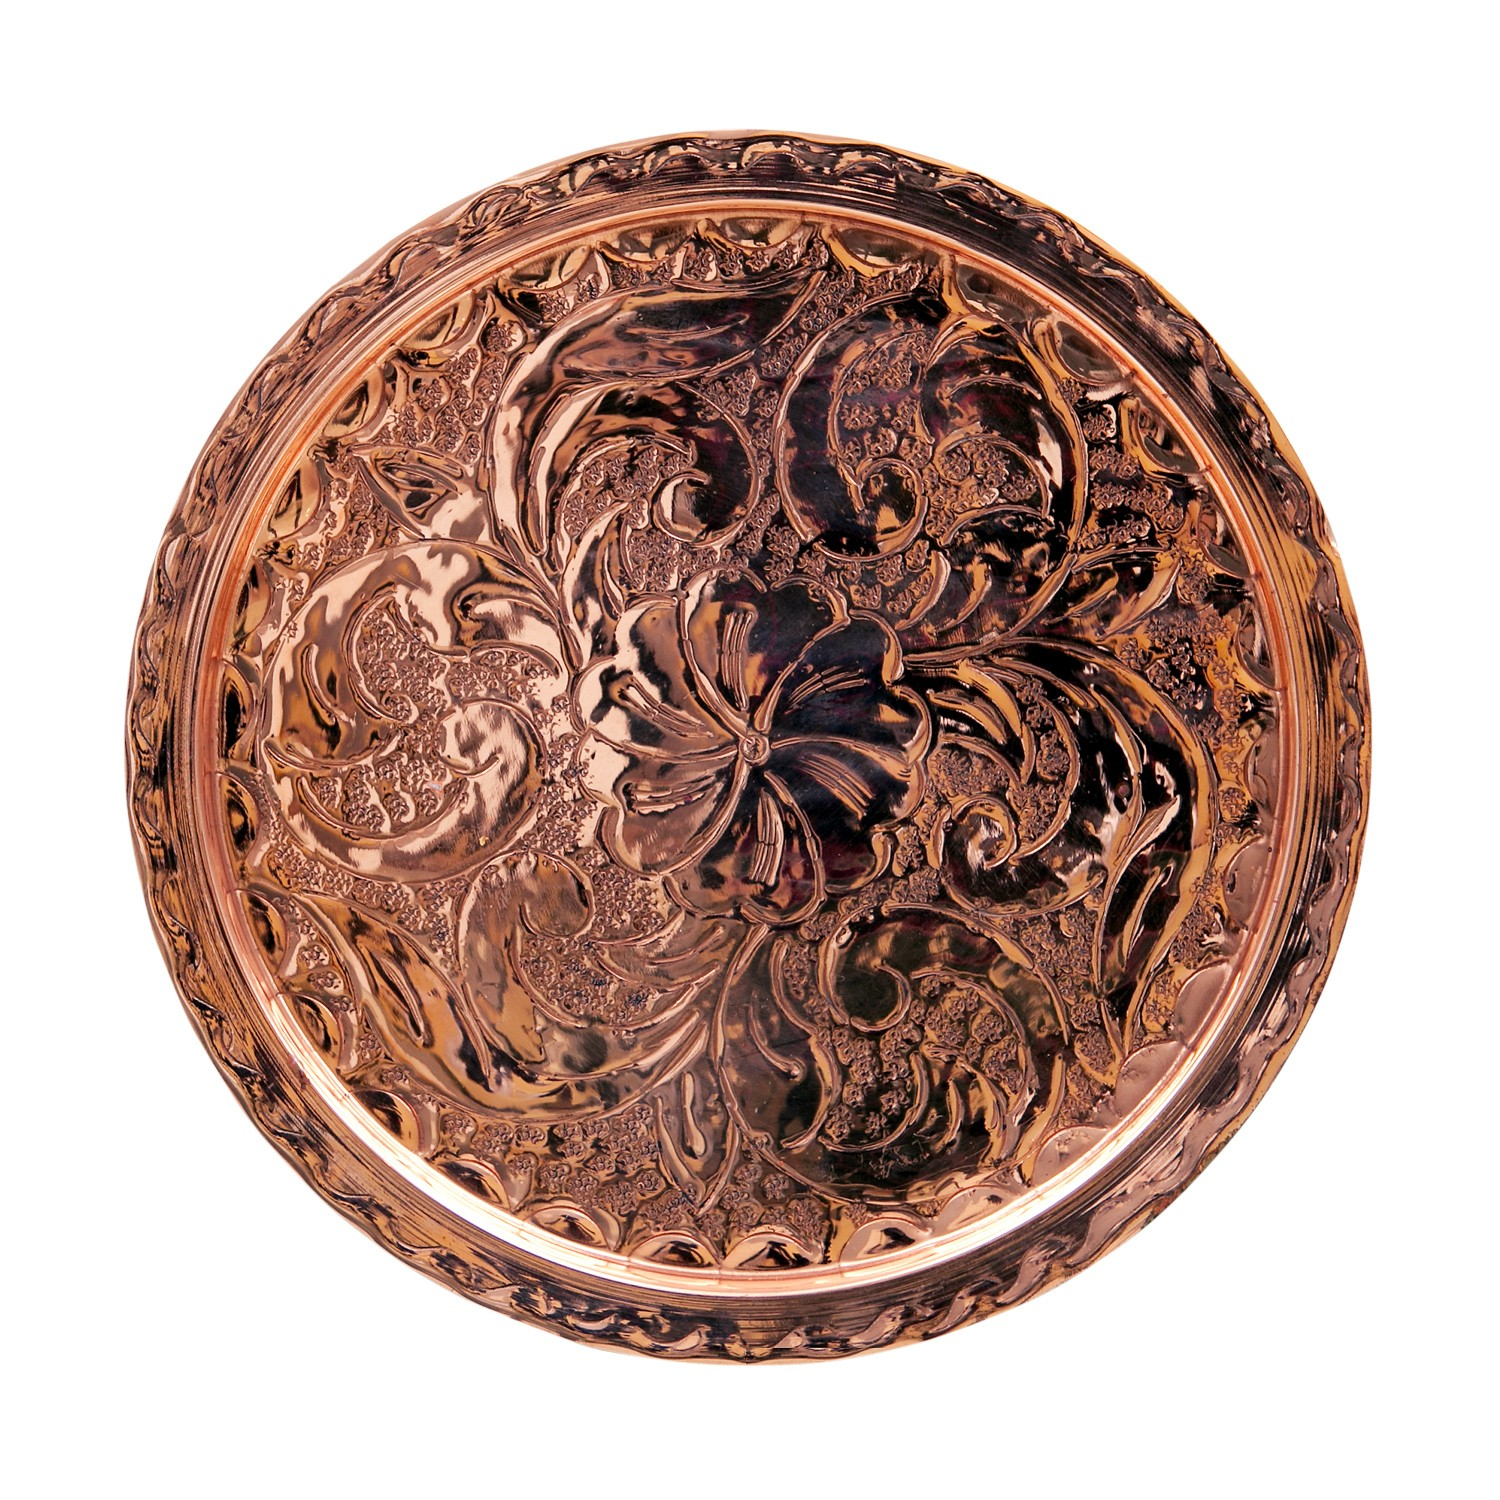 Decorative Copper Tray -A